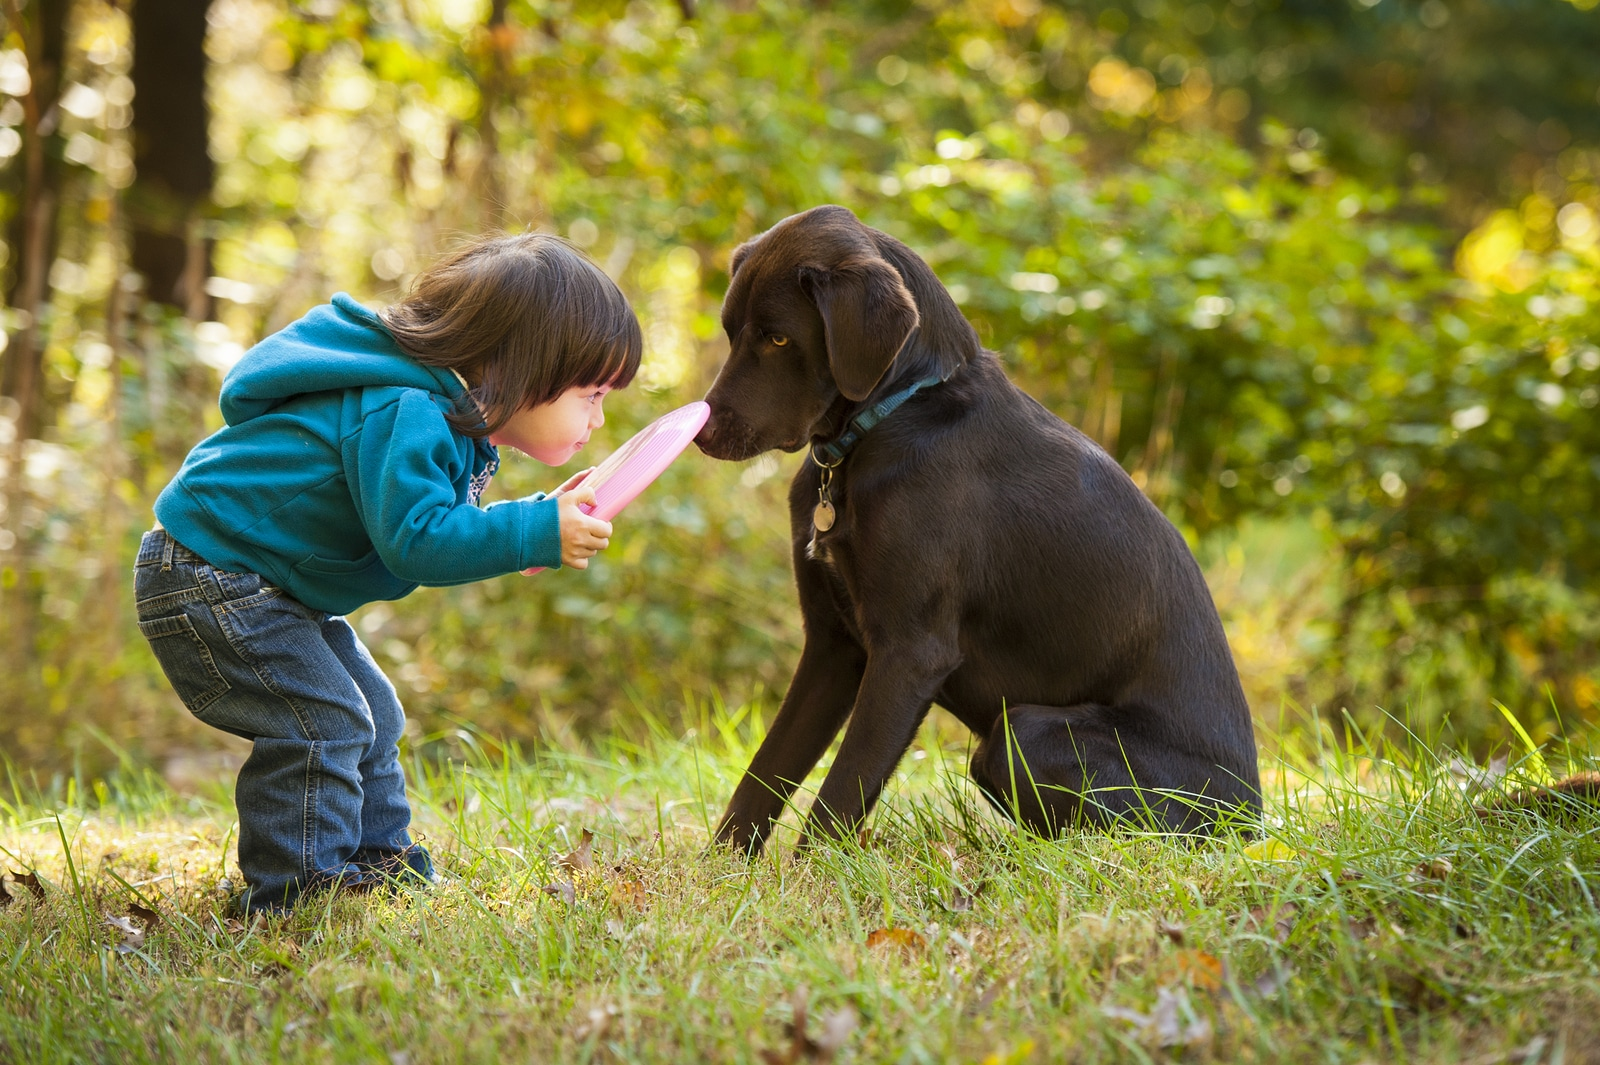 alignthoughts - Young child playing fetch with dog